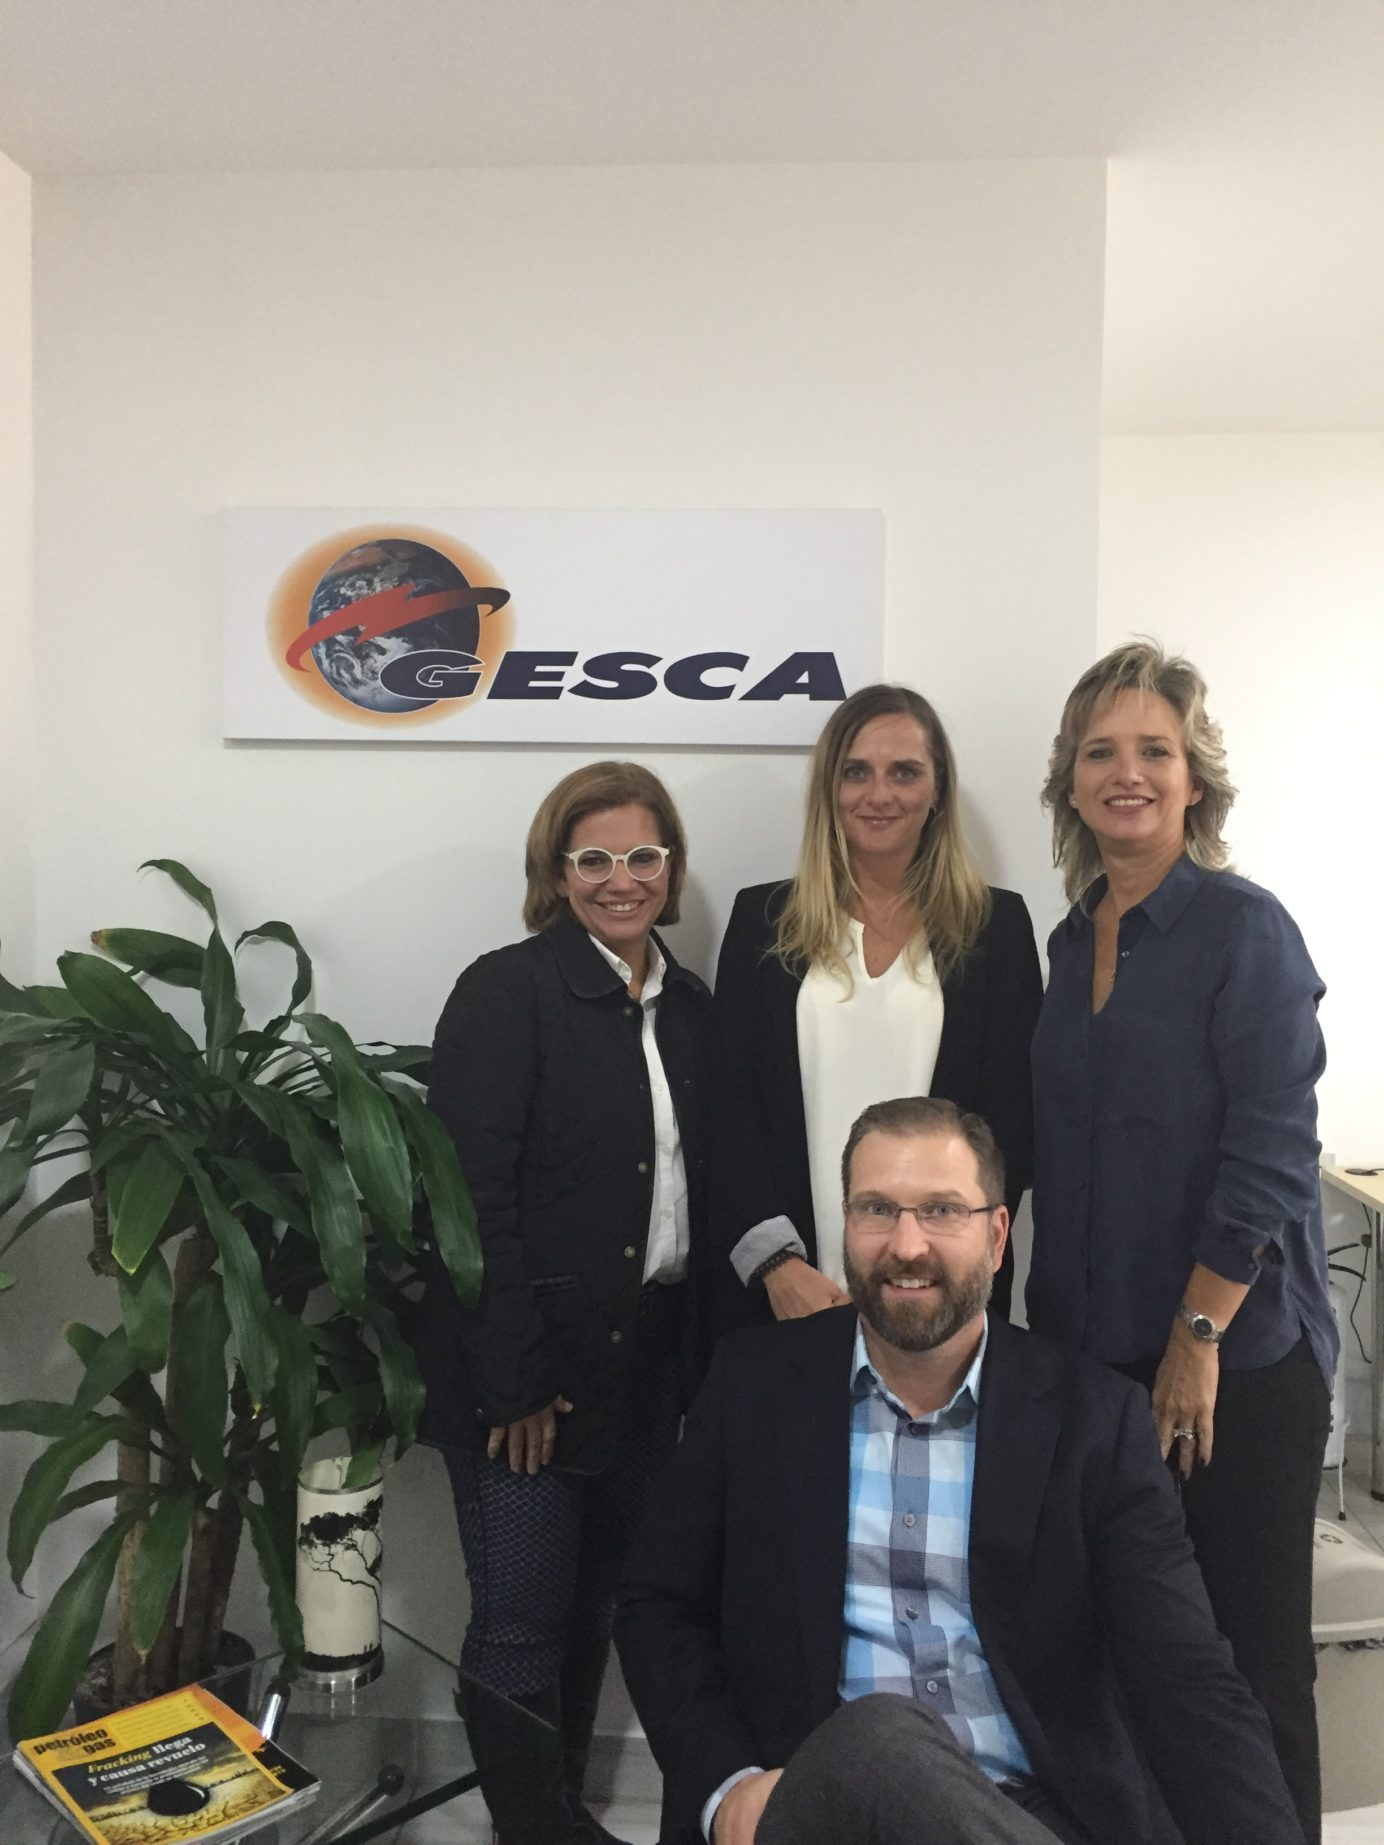 Tendeka staff and agents in front of GESCA sign